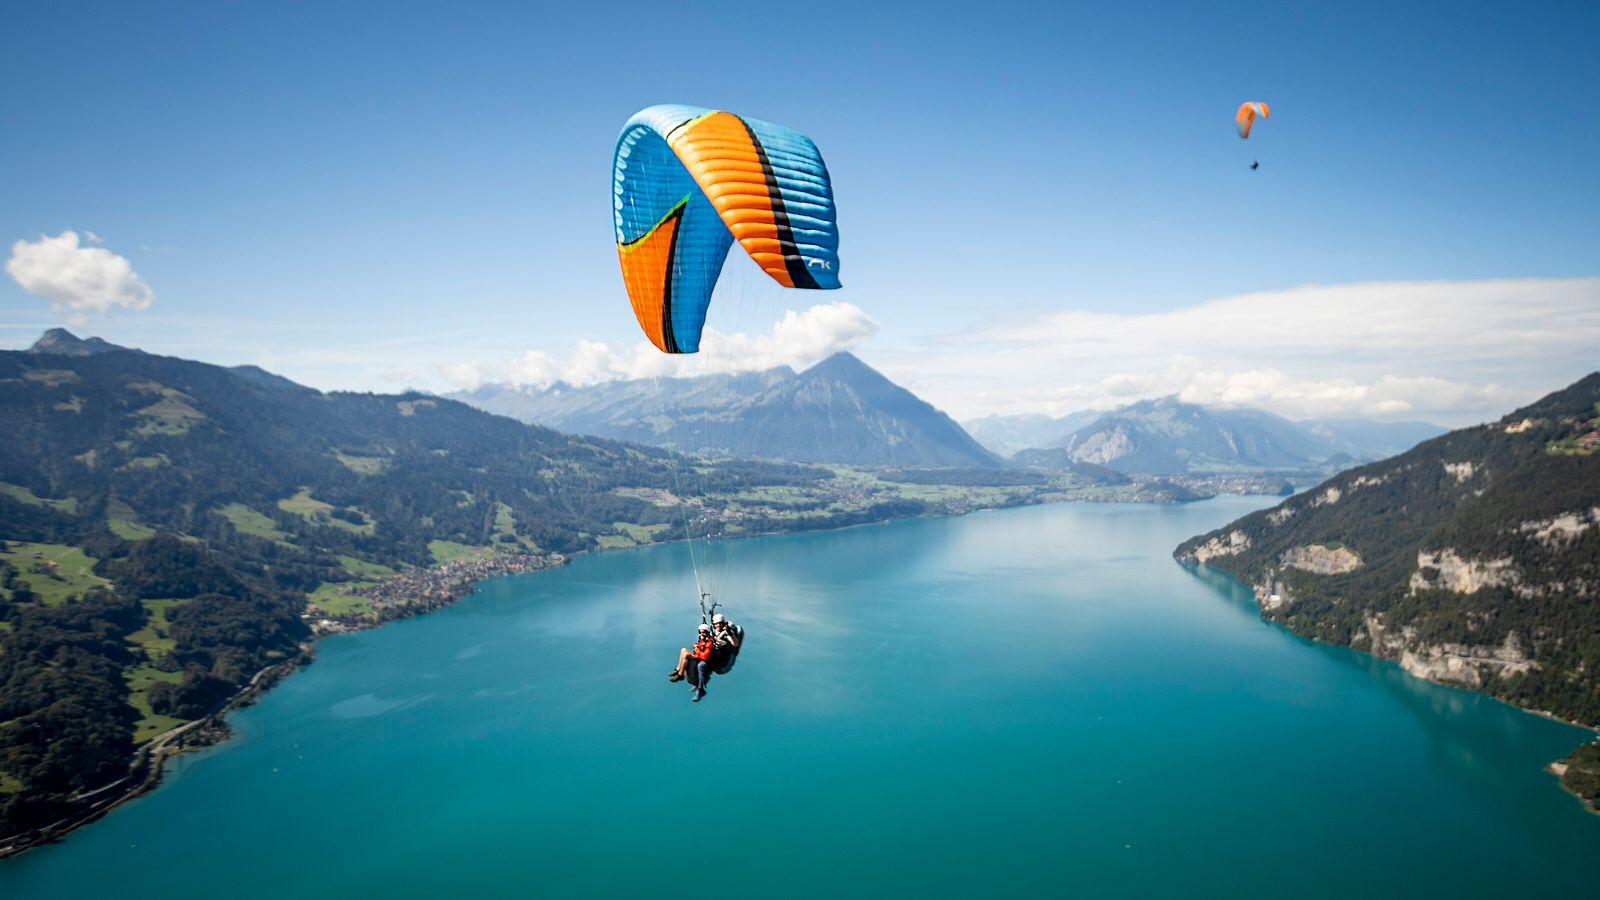 The Swiss town of Interlaken (meaning 'between the lakes') is an adventure playground.